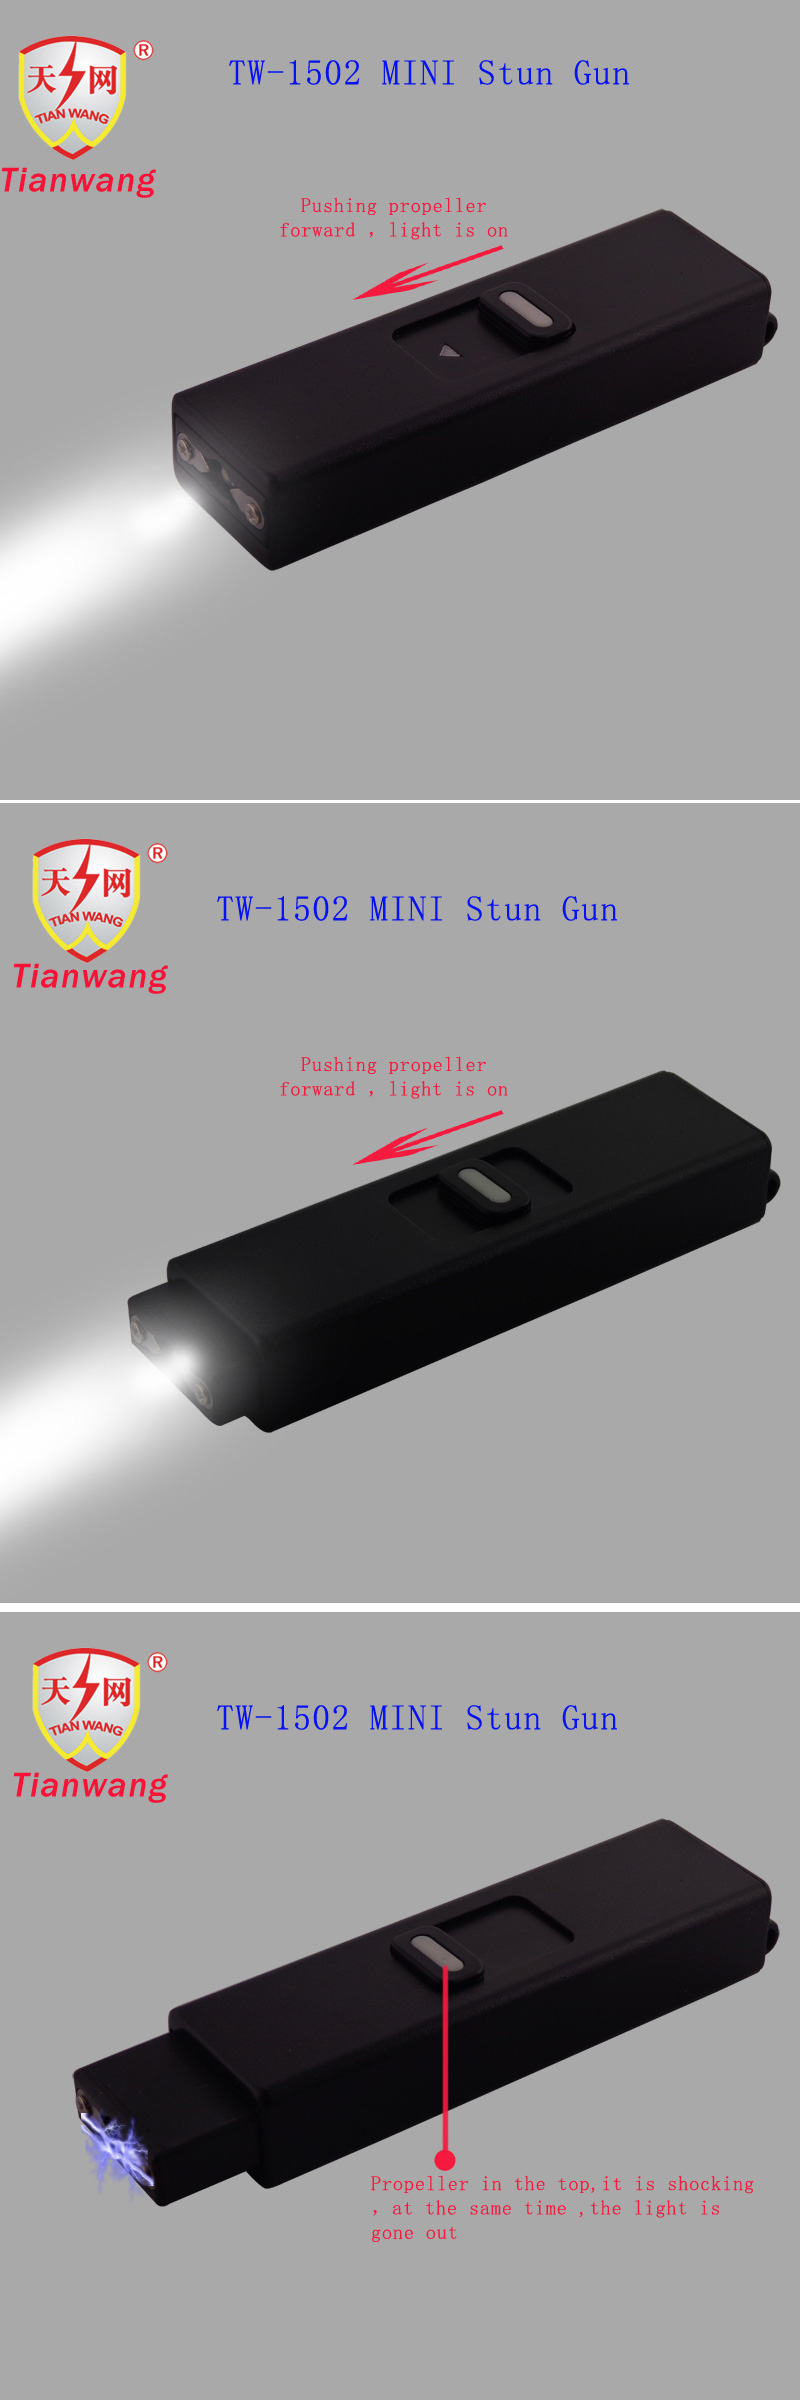 Hot Sales Electric Shock Gun Defense with LED Flashlight